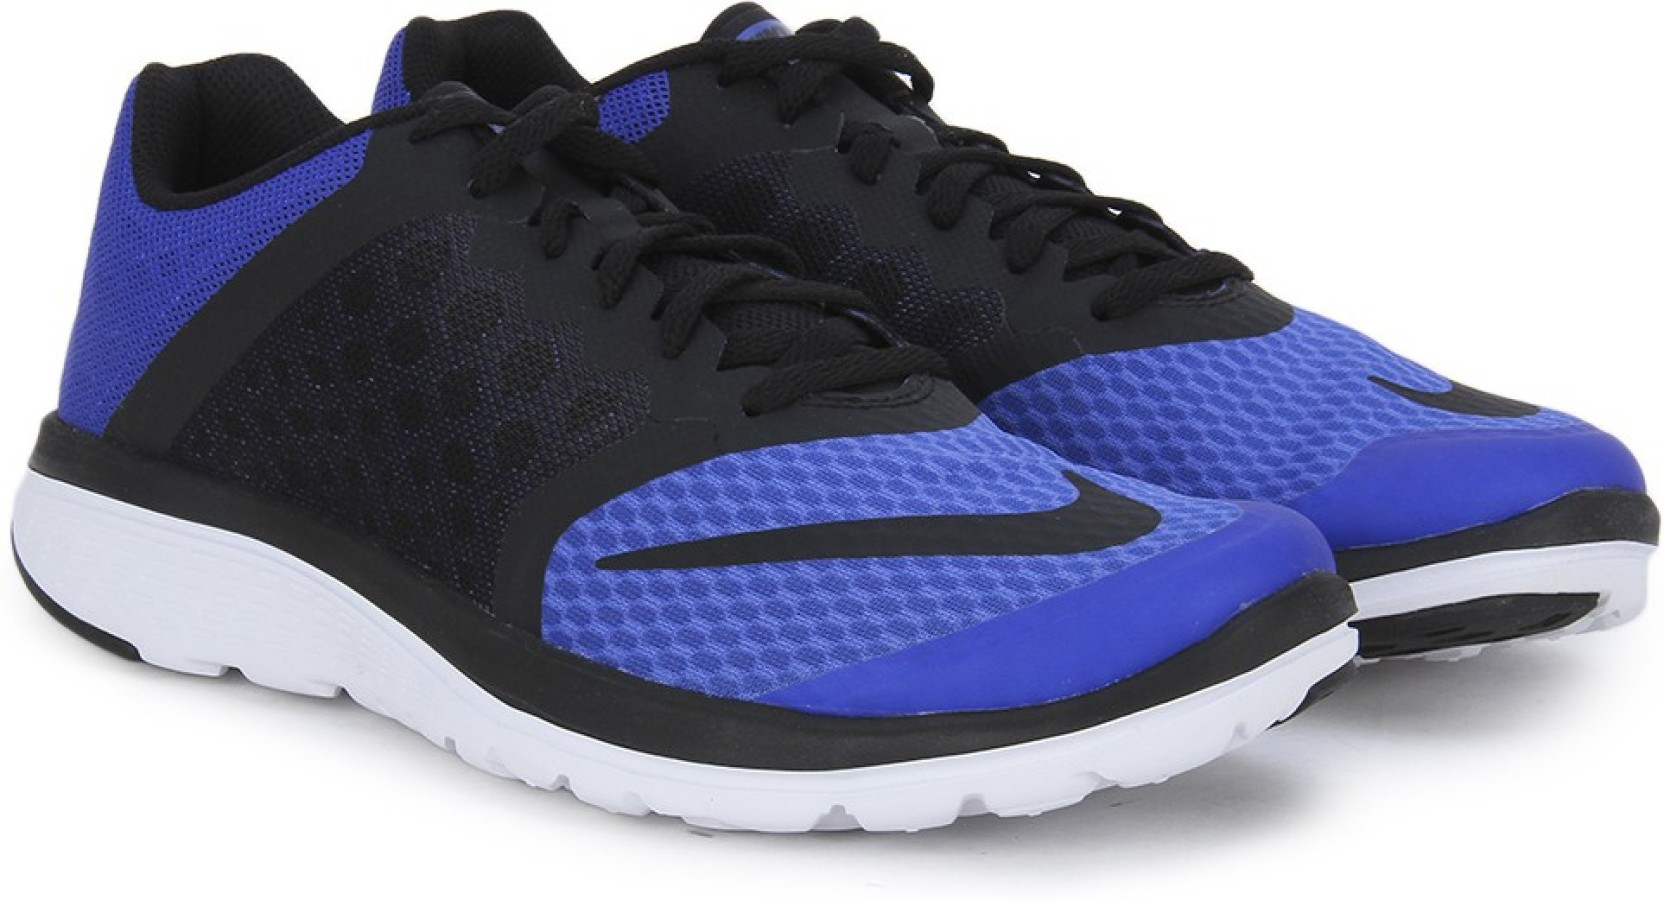 a8b913c0d1a Nike FS LITE RUN 3 Men Running Shoes For Men - Buy RACER BLUE BLACK ...